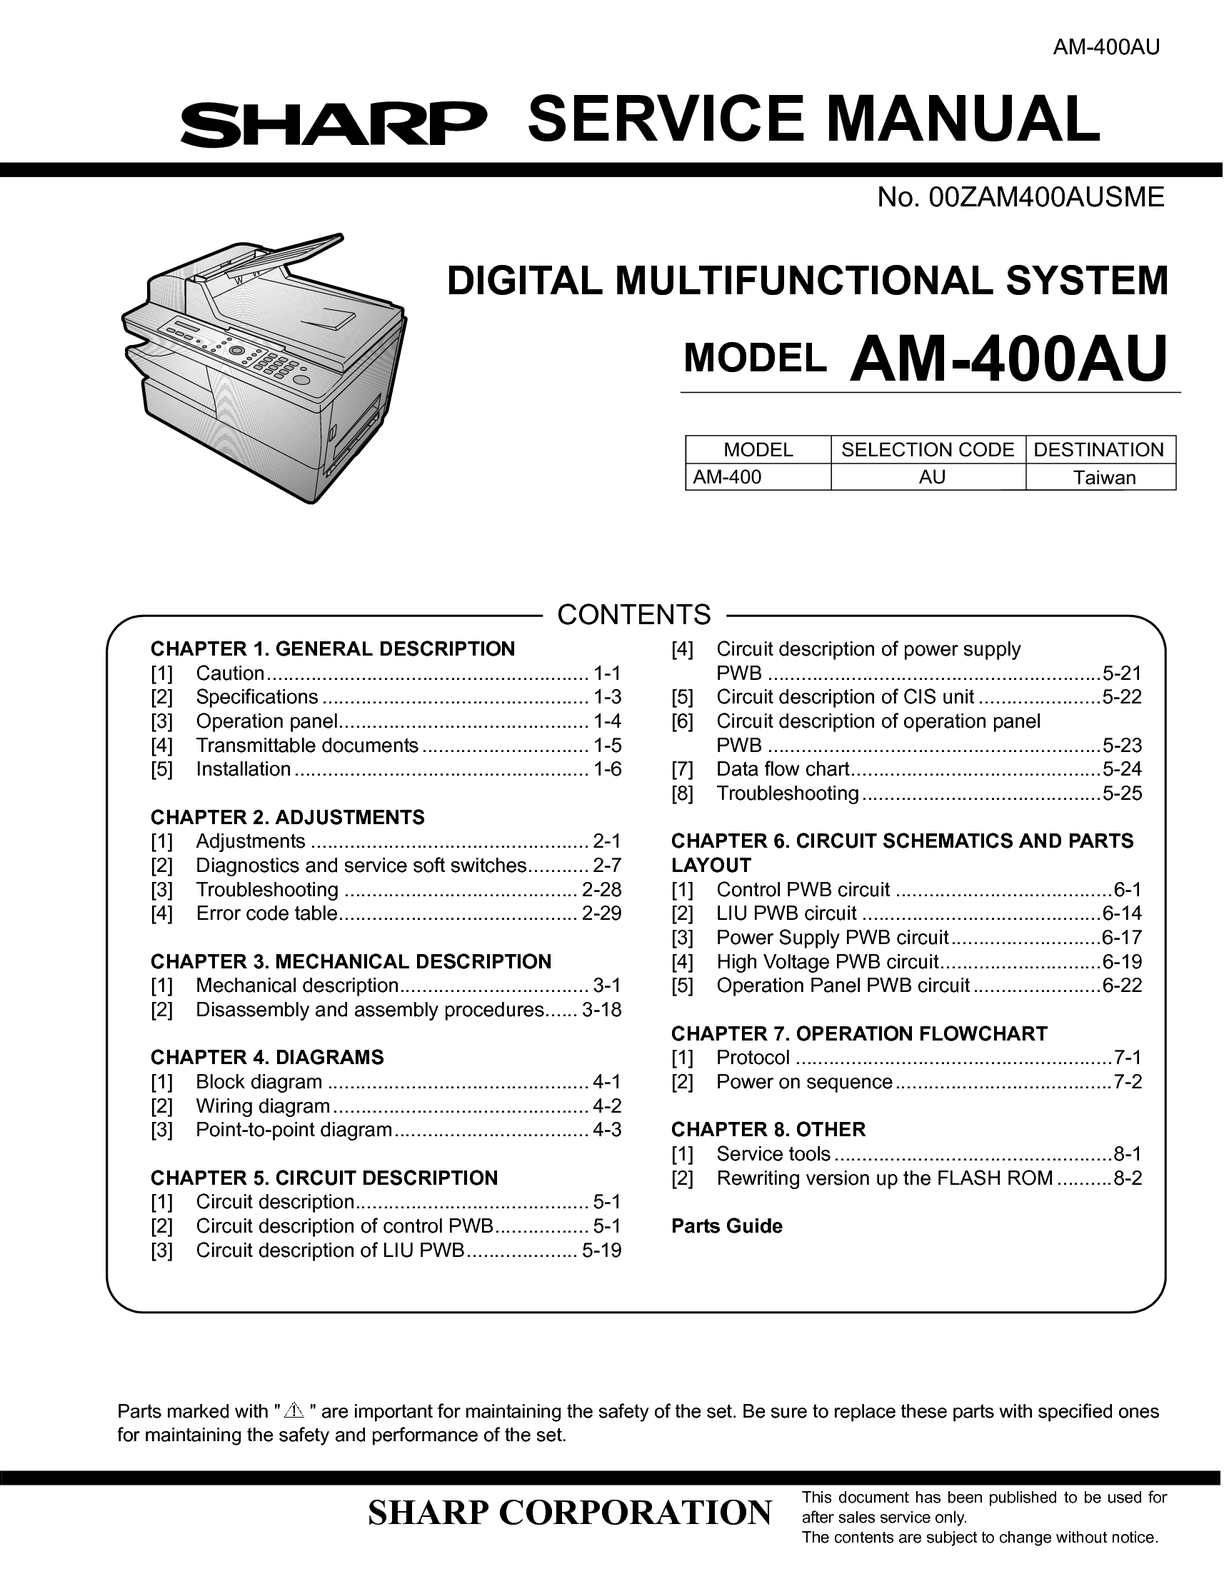 Calamo Service Manual Am410 Air Conditioning C60 Overhead System Wiring Diagram G Models For